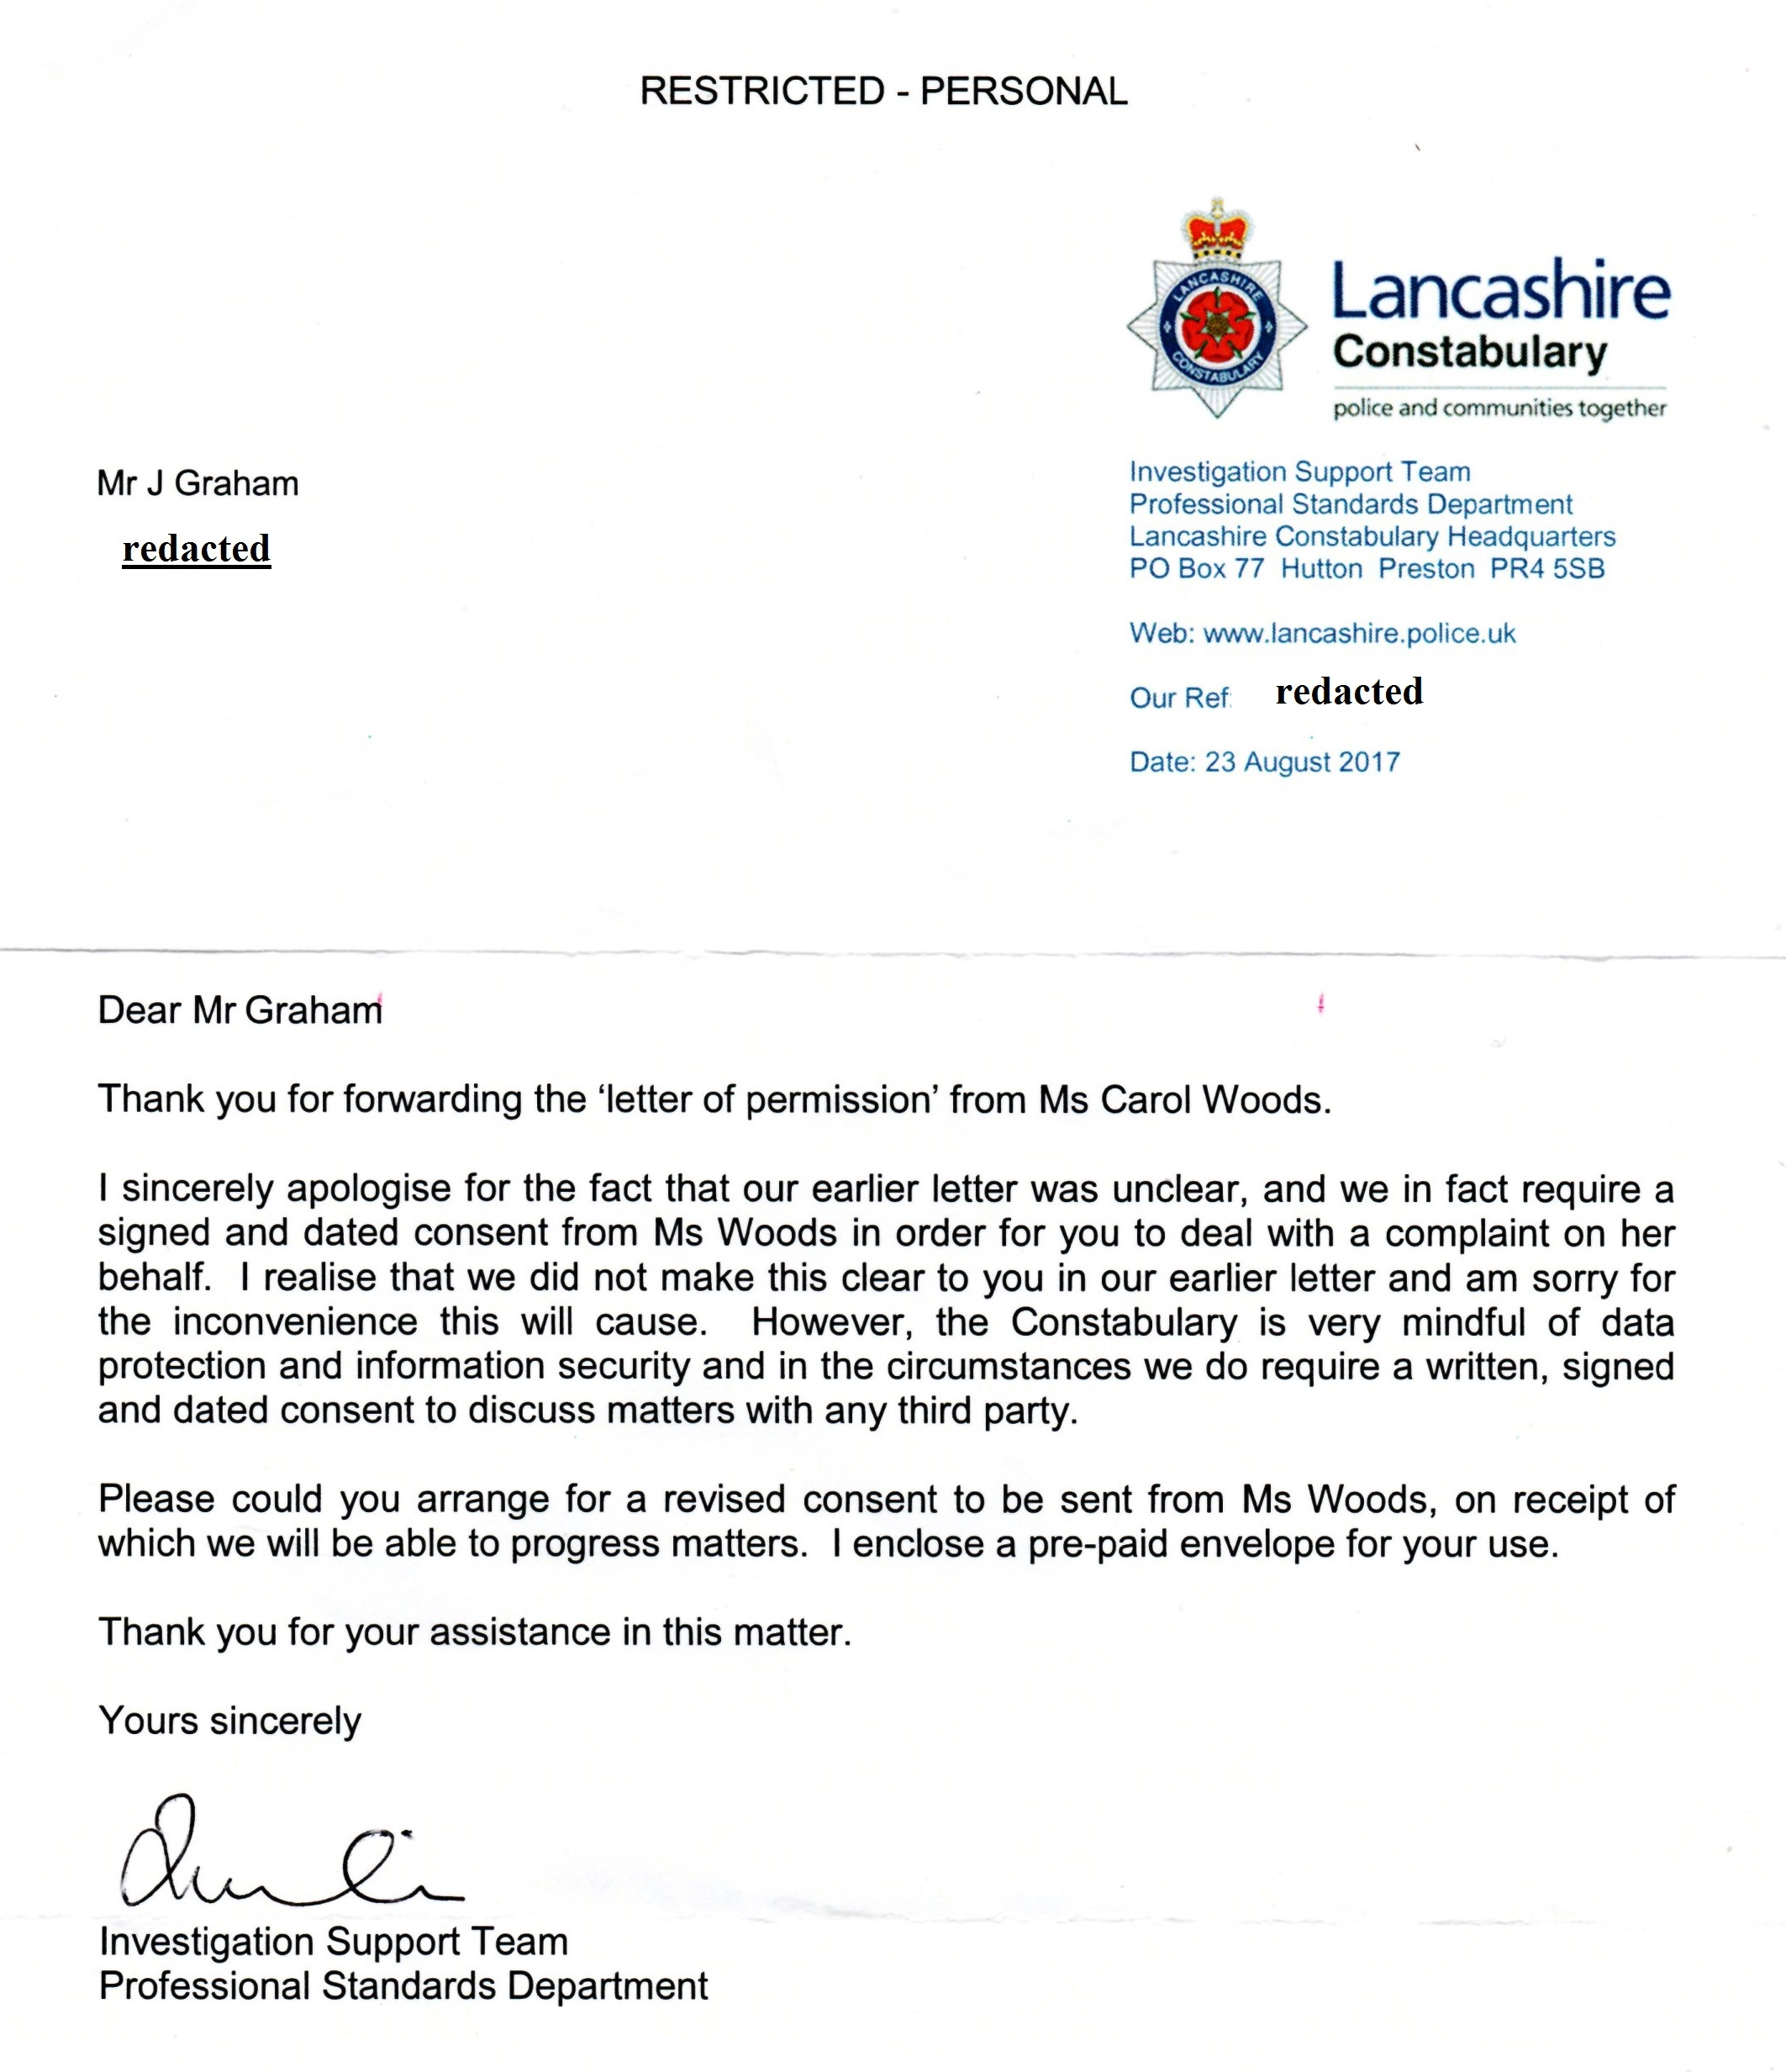 Victims of the state they cannot force a man to live in an embassy the letter of permission from carol woods dated 24 august 17 asked for by and sent 25 aug 17 to lancs police by recorded delivery 1st class royal mail altavistaventures Gallery